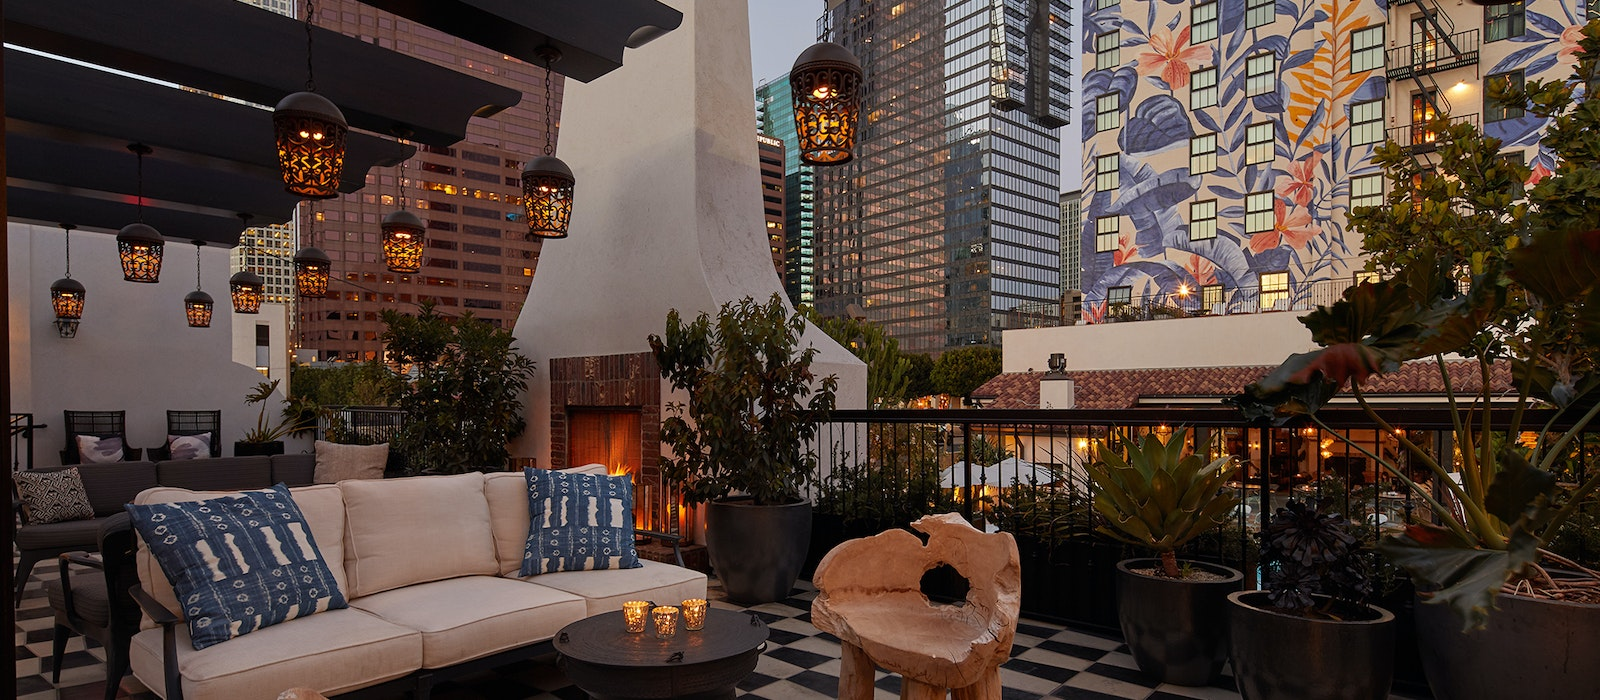 Downtown L.A.'s Hotel Figueroa opened earlier this year after an extensive two-year renovation project.